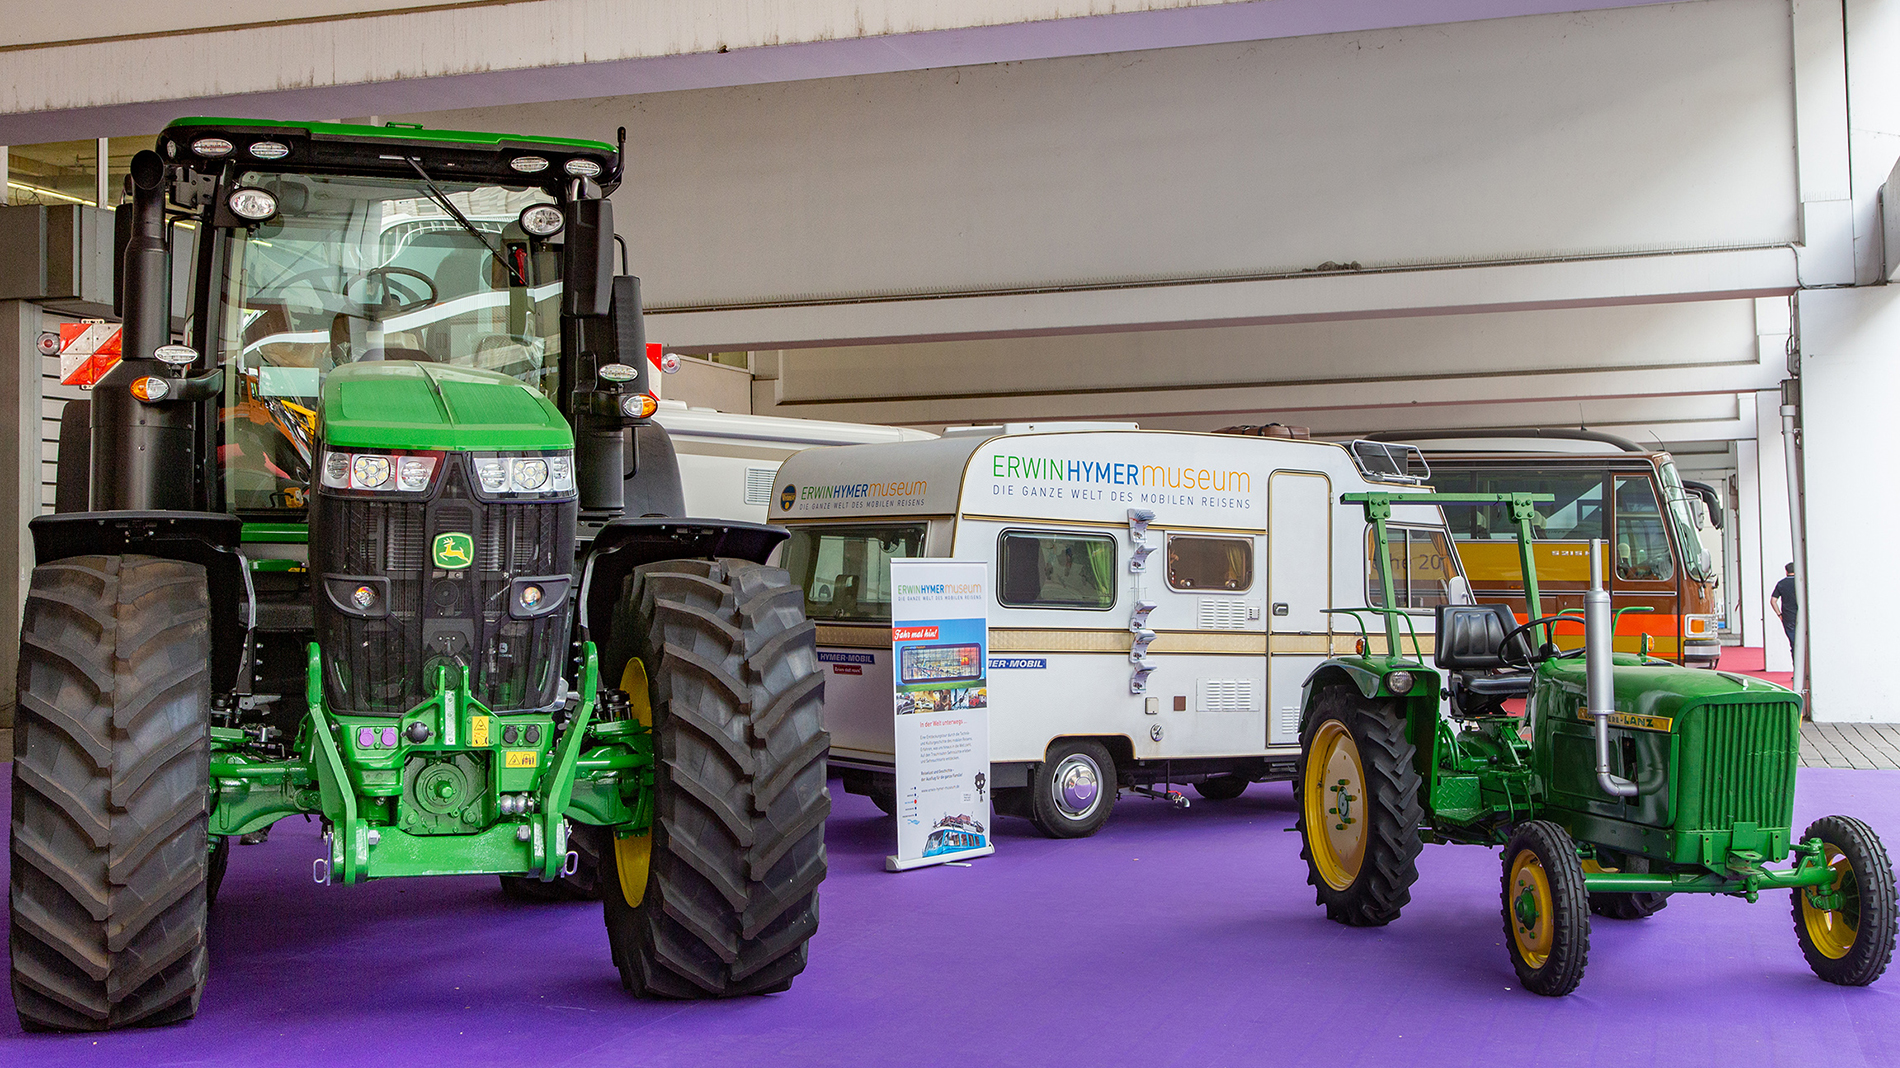 Tractors at Automechanika